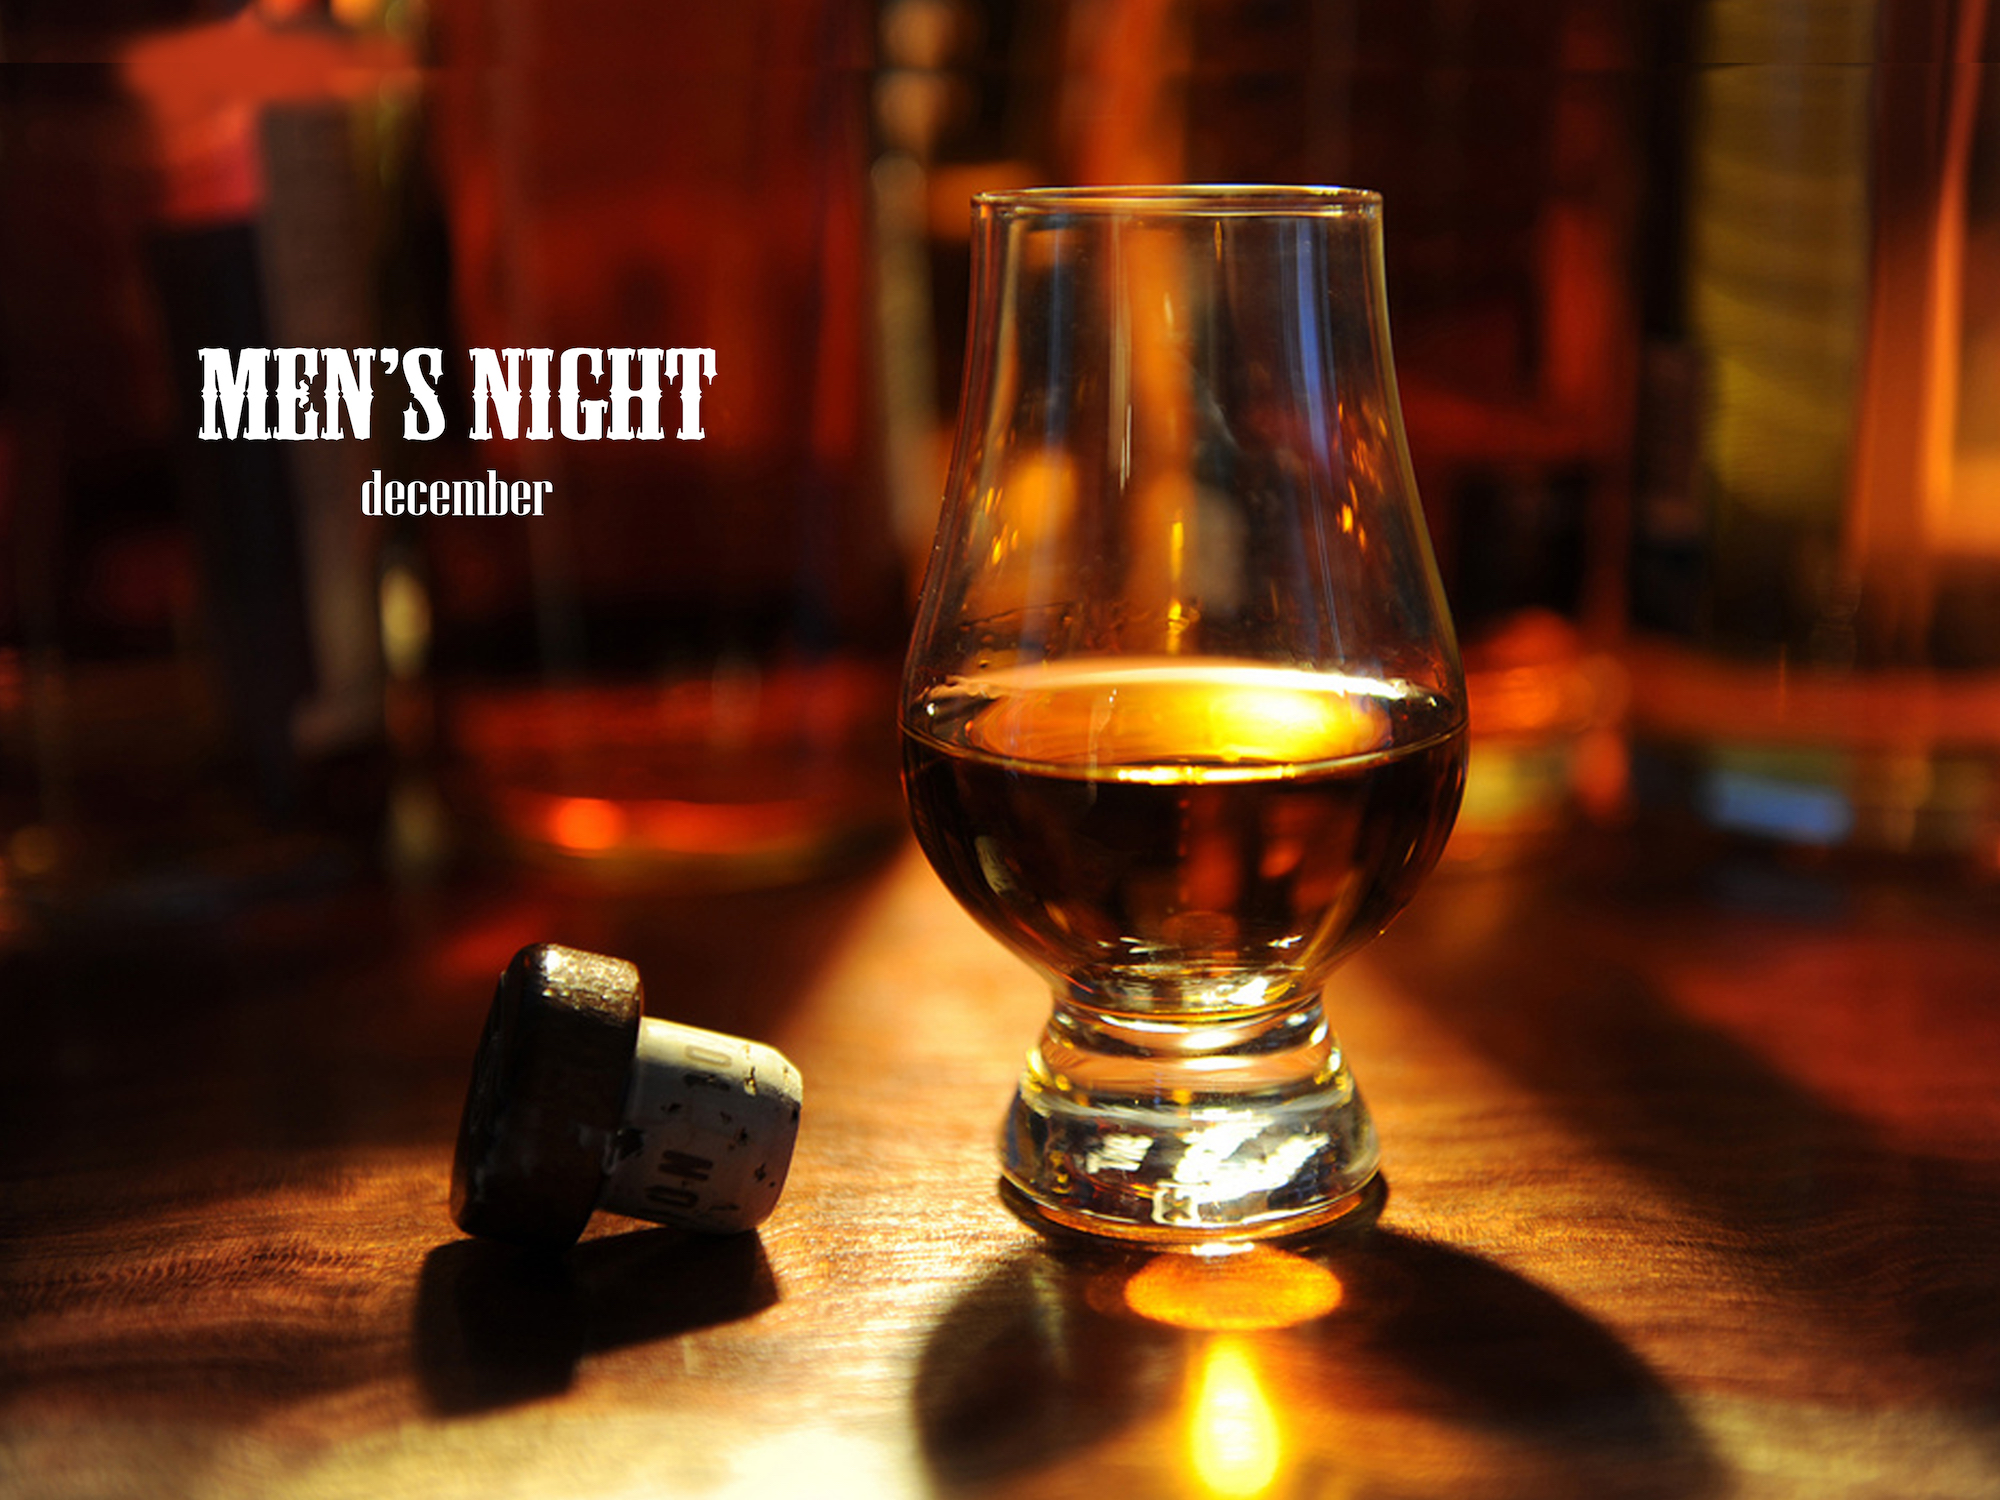 Glass of whiskey on a table with a cork nearby, warm shadowy lighting and the words Men's Night December